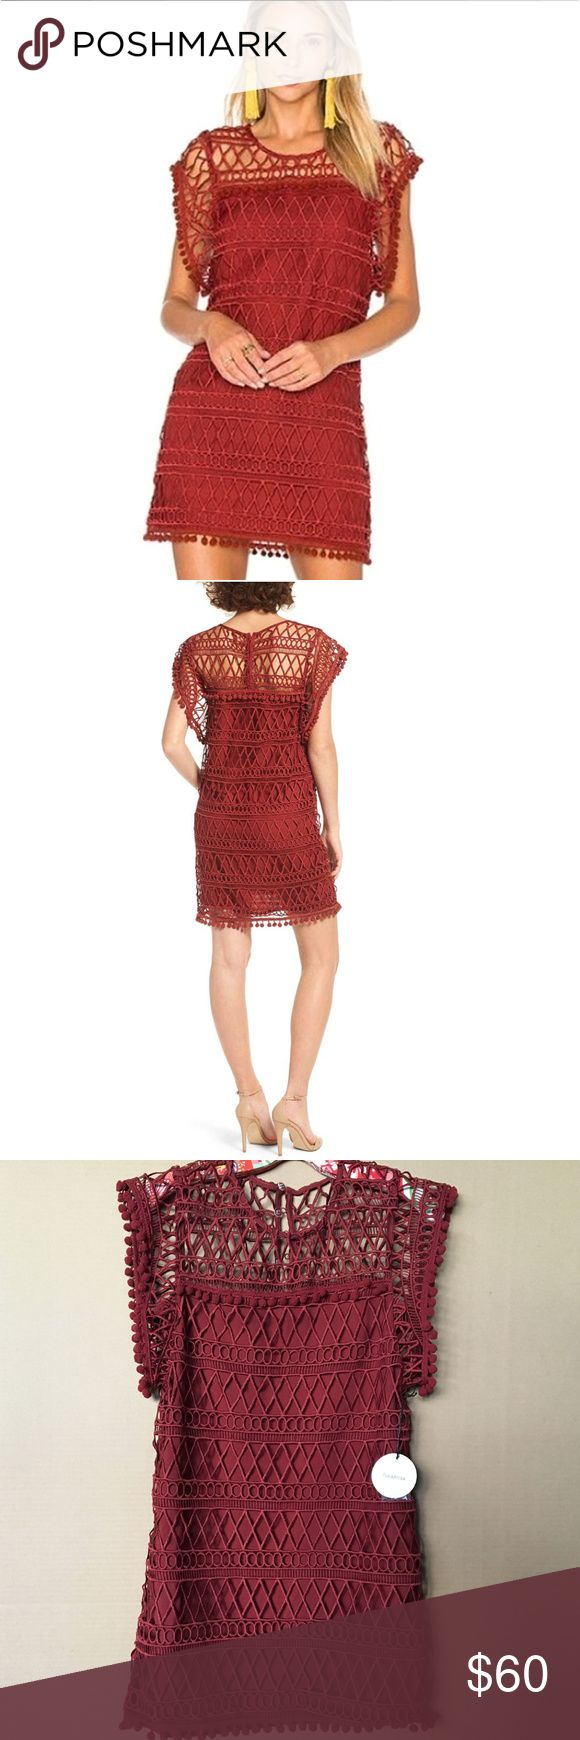 """Tularosa """"Clayton"""" tunic mini dress -- BNWT Playful pompoms dance along the edges of this short shift dress made from beautiful brick-colored lace. Features relaxed fit, round sheer neckline, exaggerated flutter sleeves, partial lining & back button closures. 17"""" waist, 17 1/2"""" waist, 18 1/2"""" hips, 31 1/2"""" long. Color is Clay / Bordeaux. Polyester/elastane, hand wash. BNWT Tularosa Dresses Mini"""